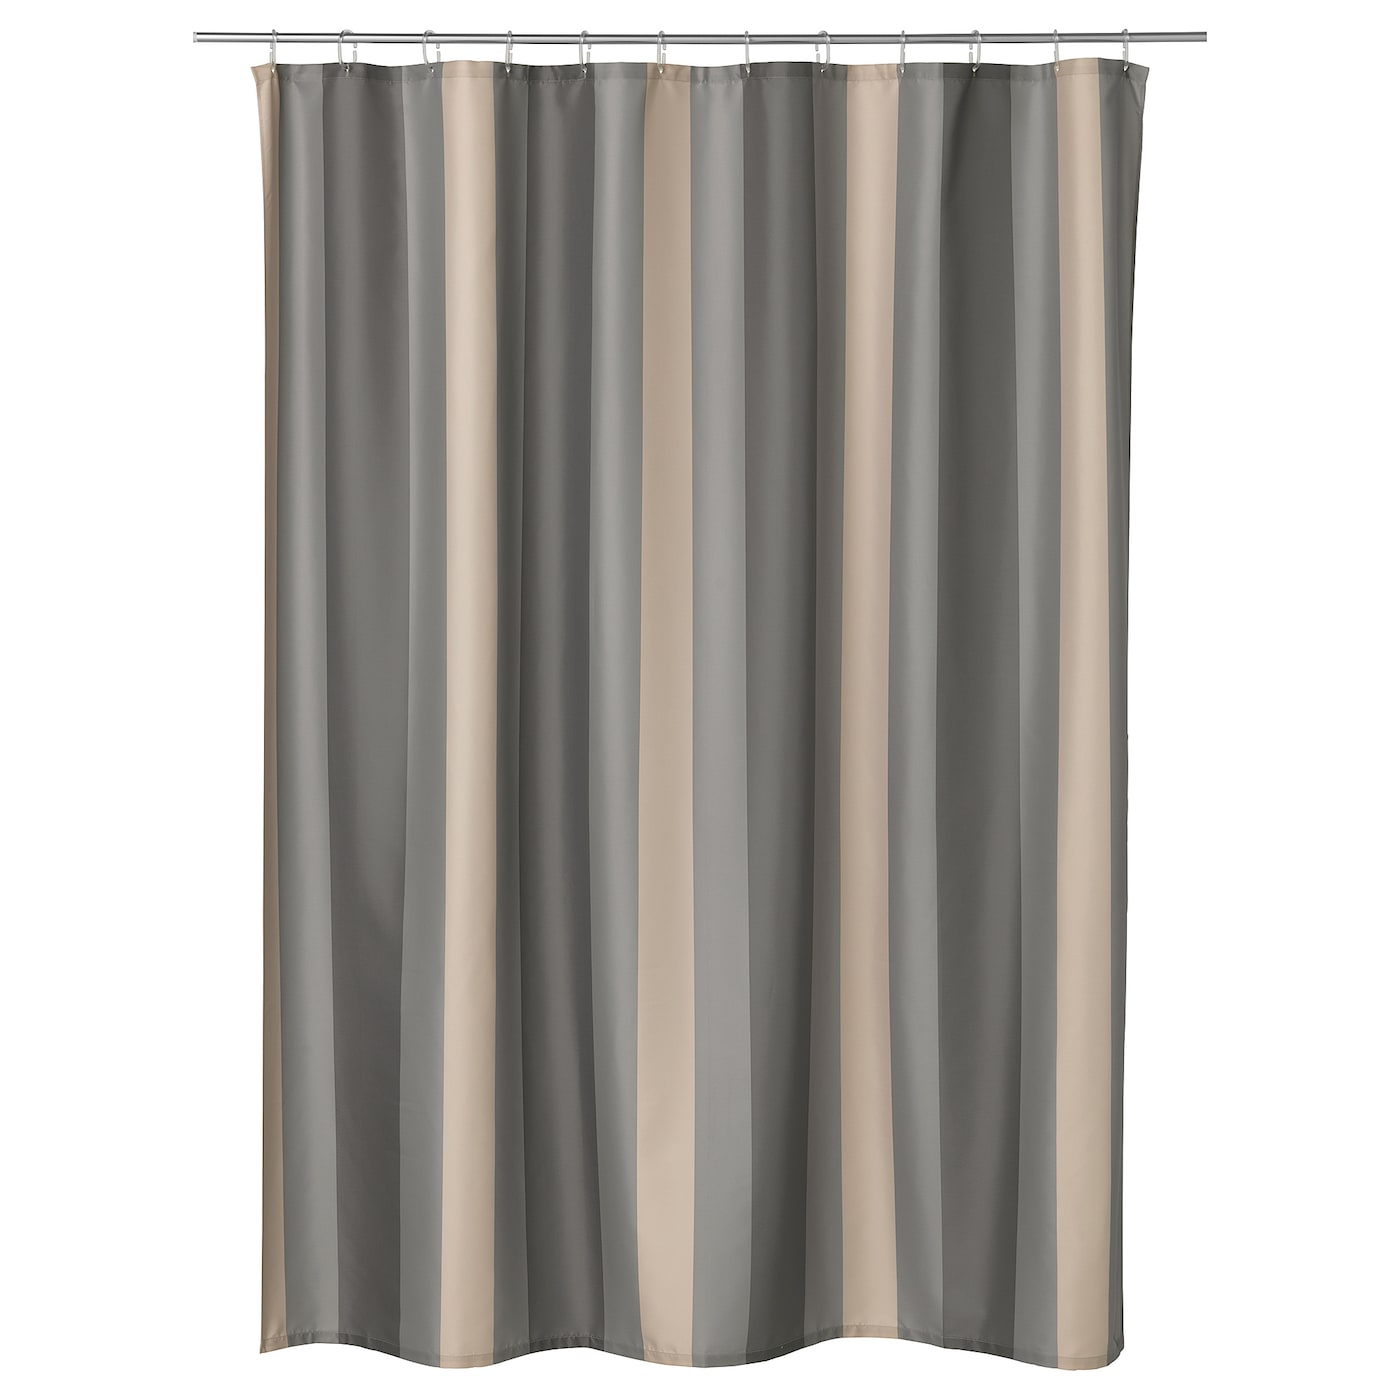 IKEA BJÖRNÅN shower curtain Densely-woven polyester fabric with water-repellent coating.